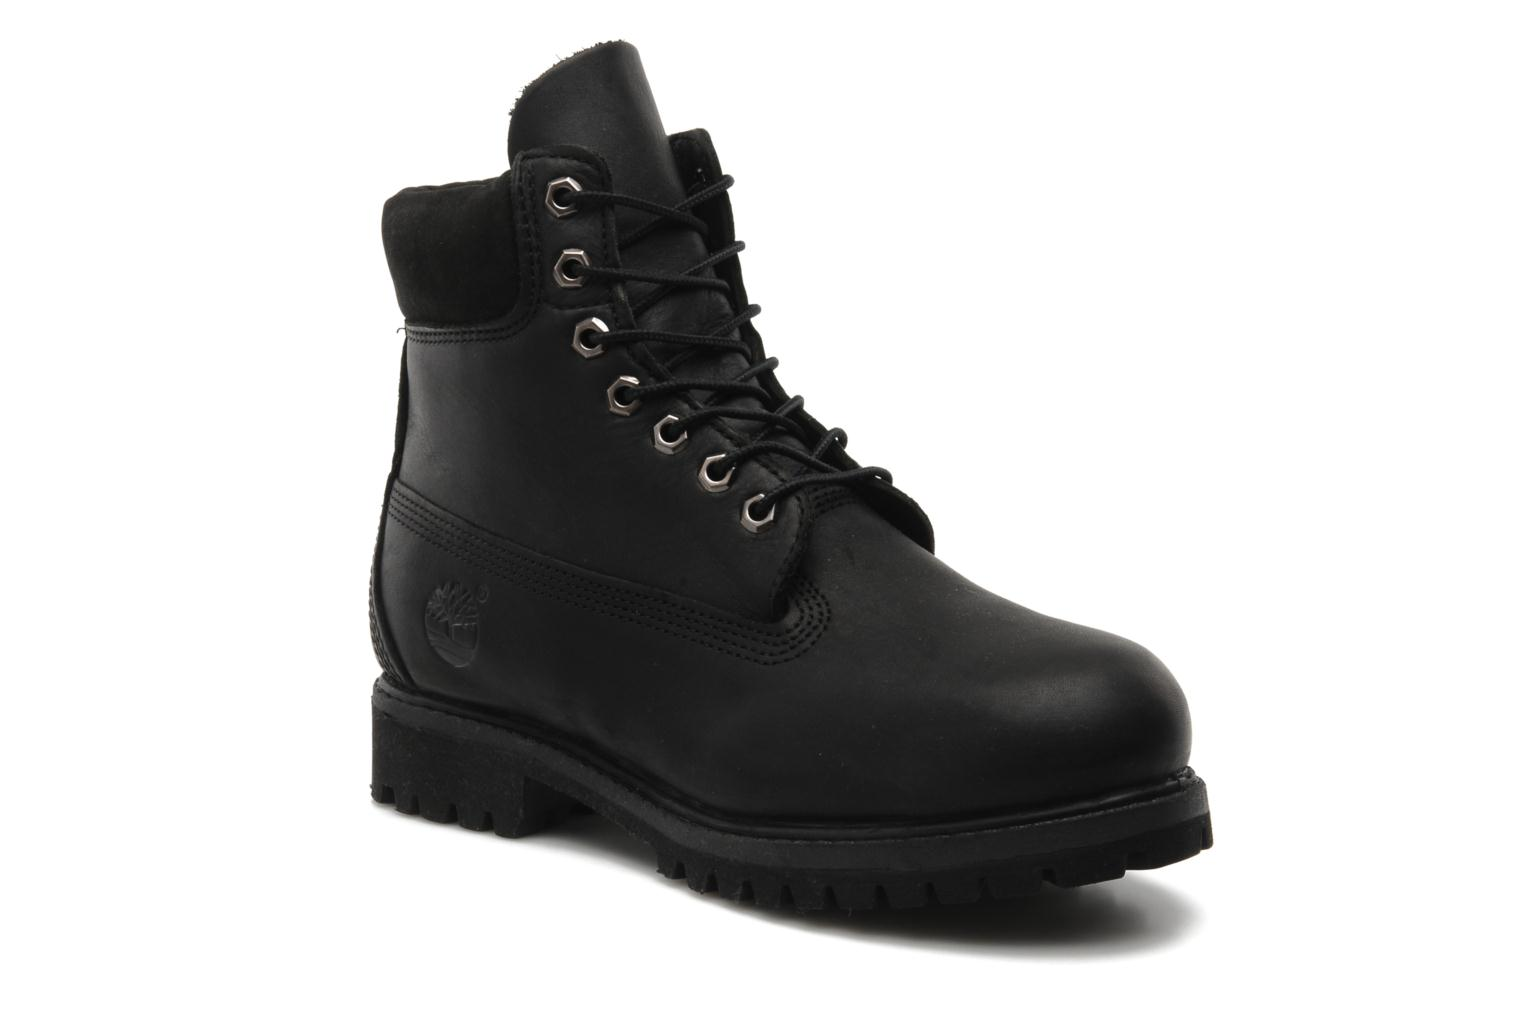 6 inch premium boot Black Smooth